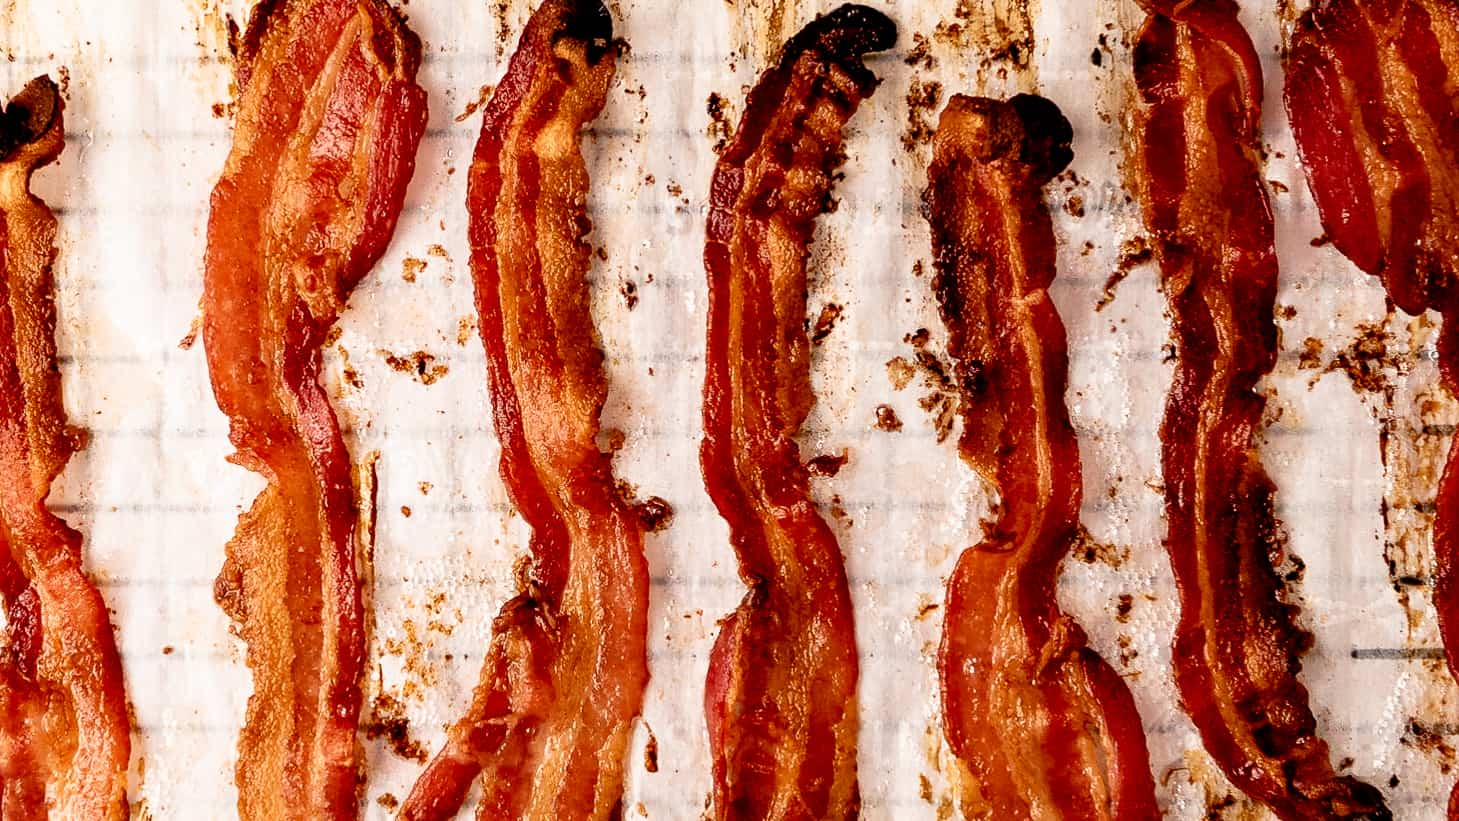 Strips of crispy bacon